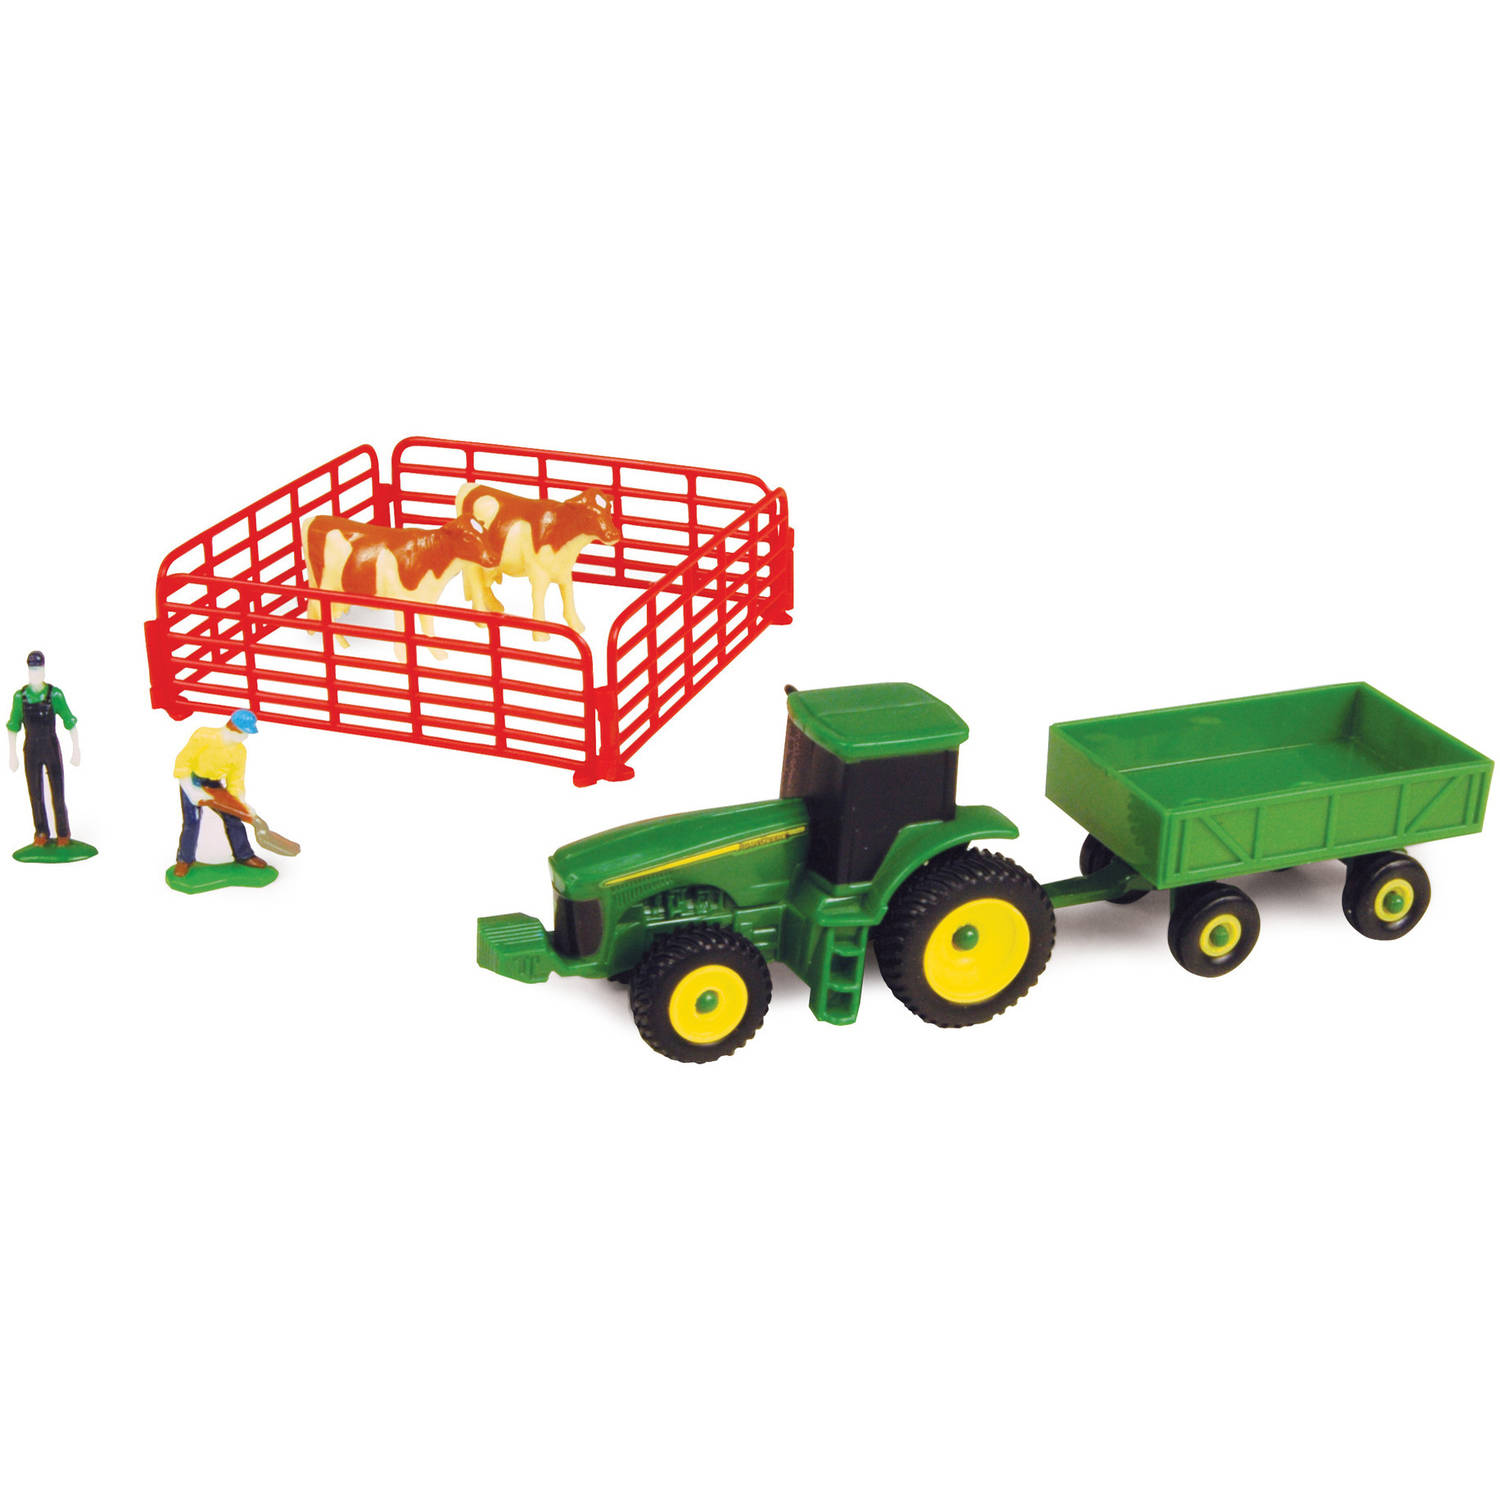 ERTL John Deere 10-Piece Set with Barge Wagon